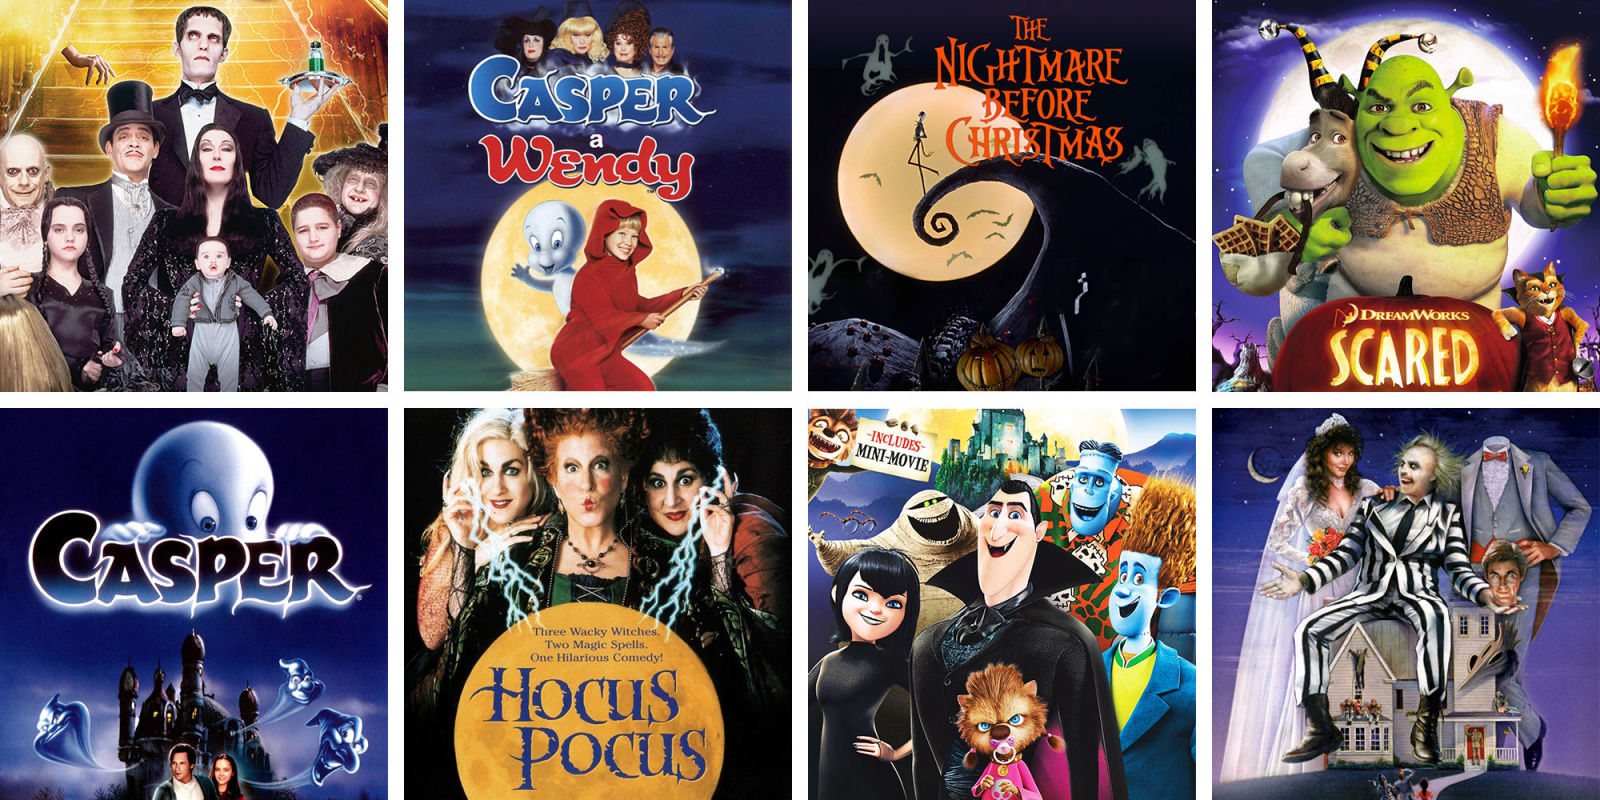 20 best halloween movies for kids silly and scary kids halloween 20 best halloween movies for kids silly and scary kids halloween - Kid Friendly Halloween Movie